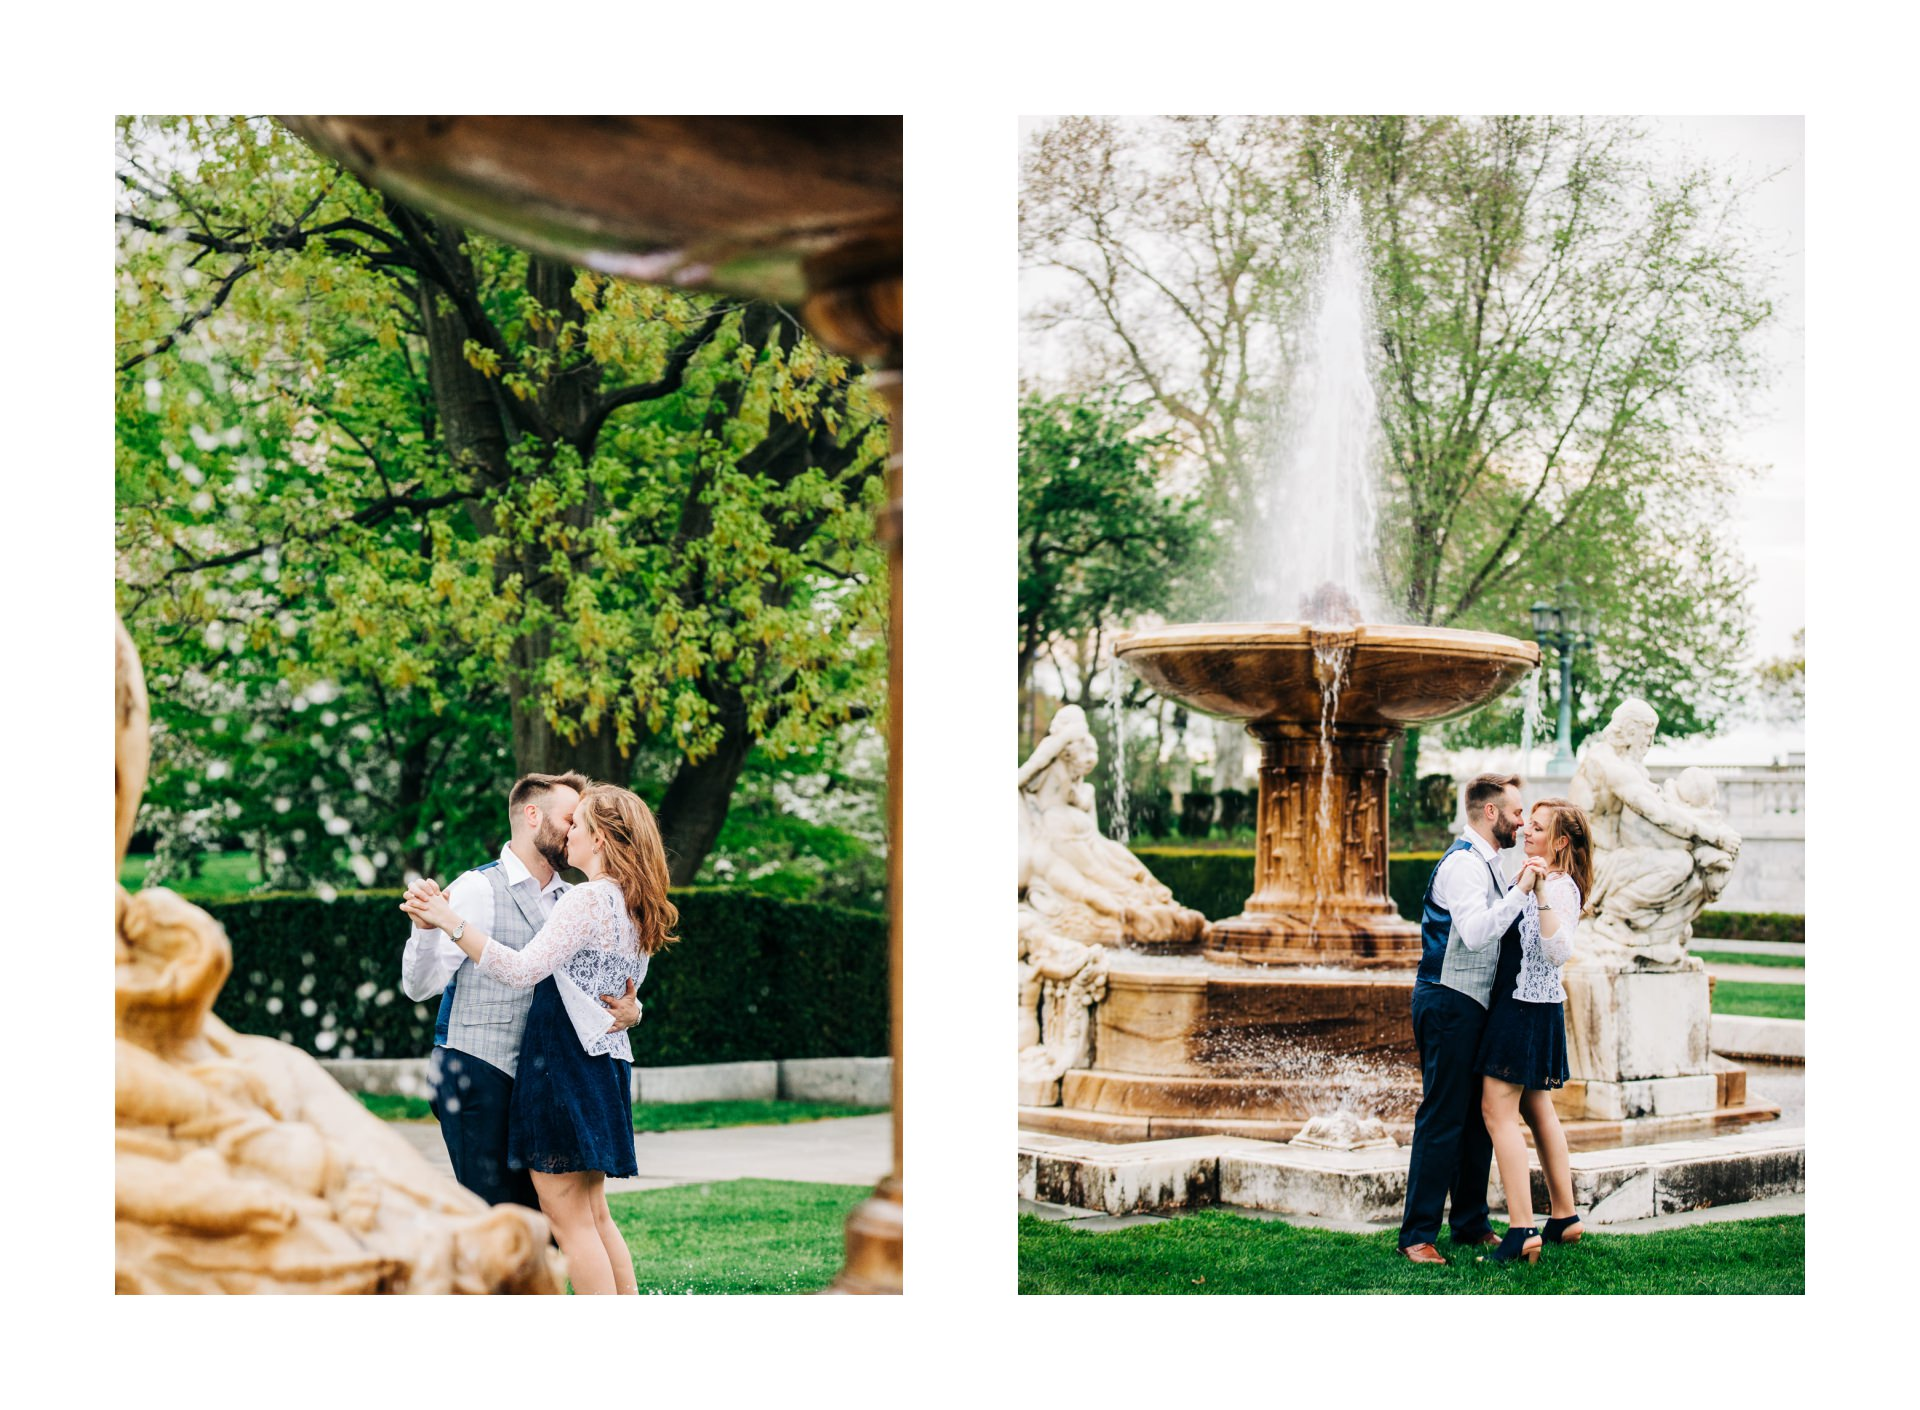 Cleveland Spring Cherry Blossom Engagement Session 12.jpg